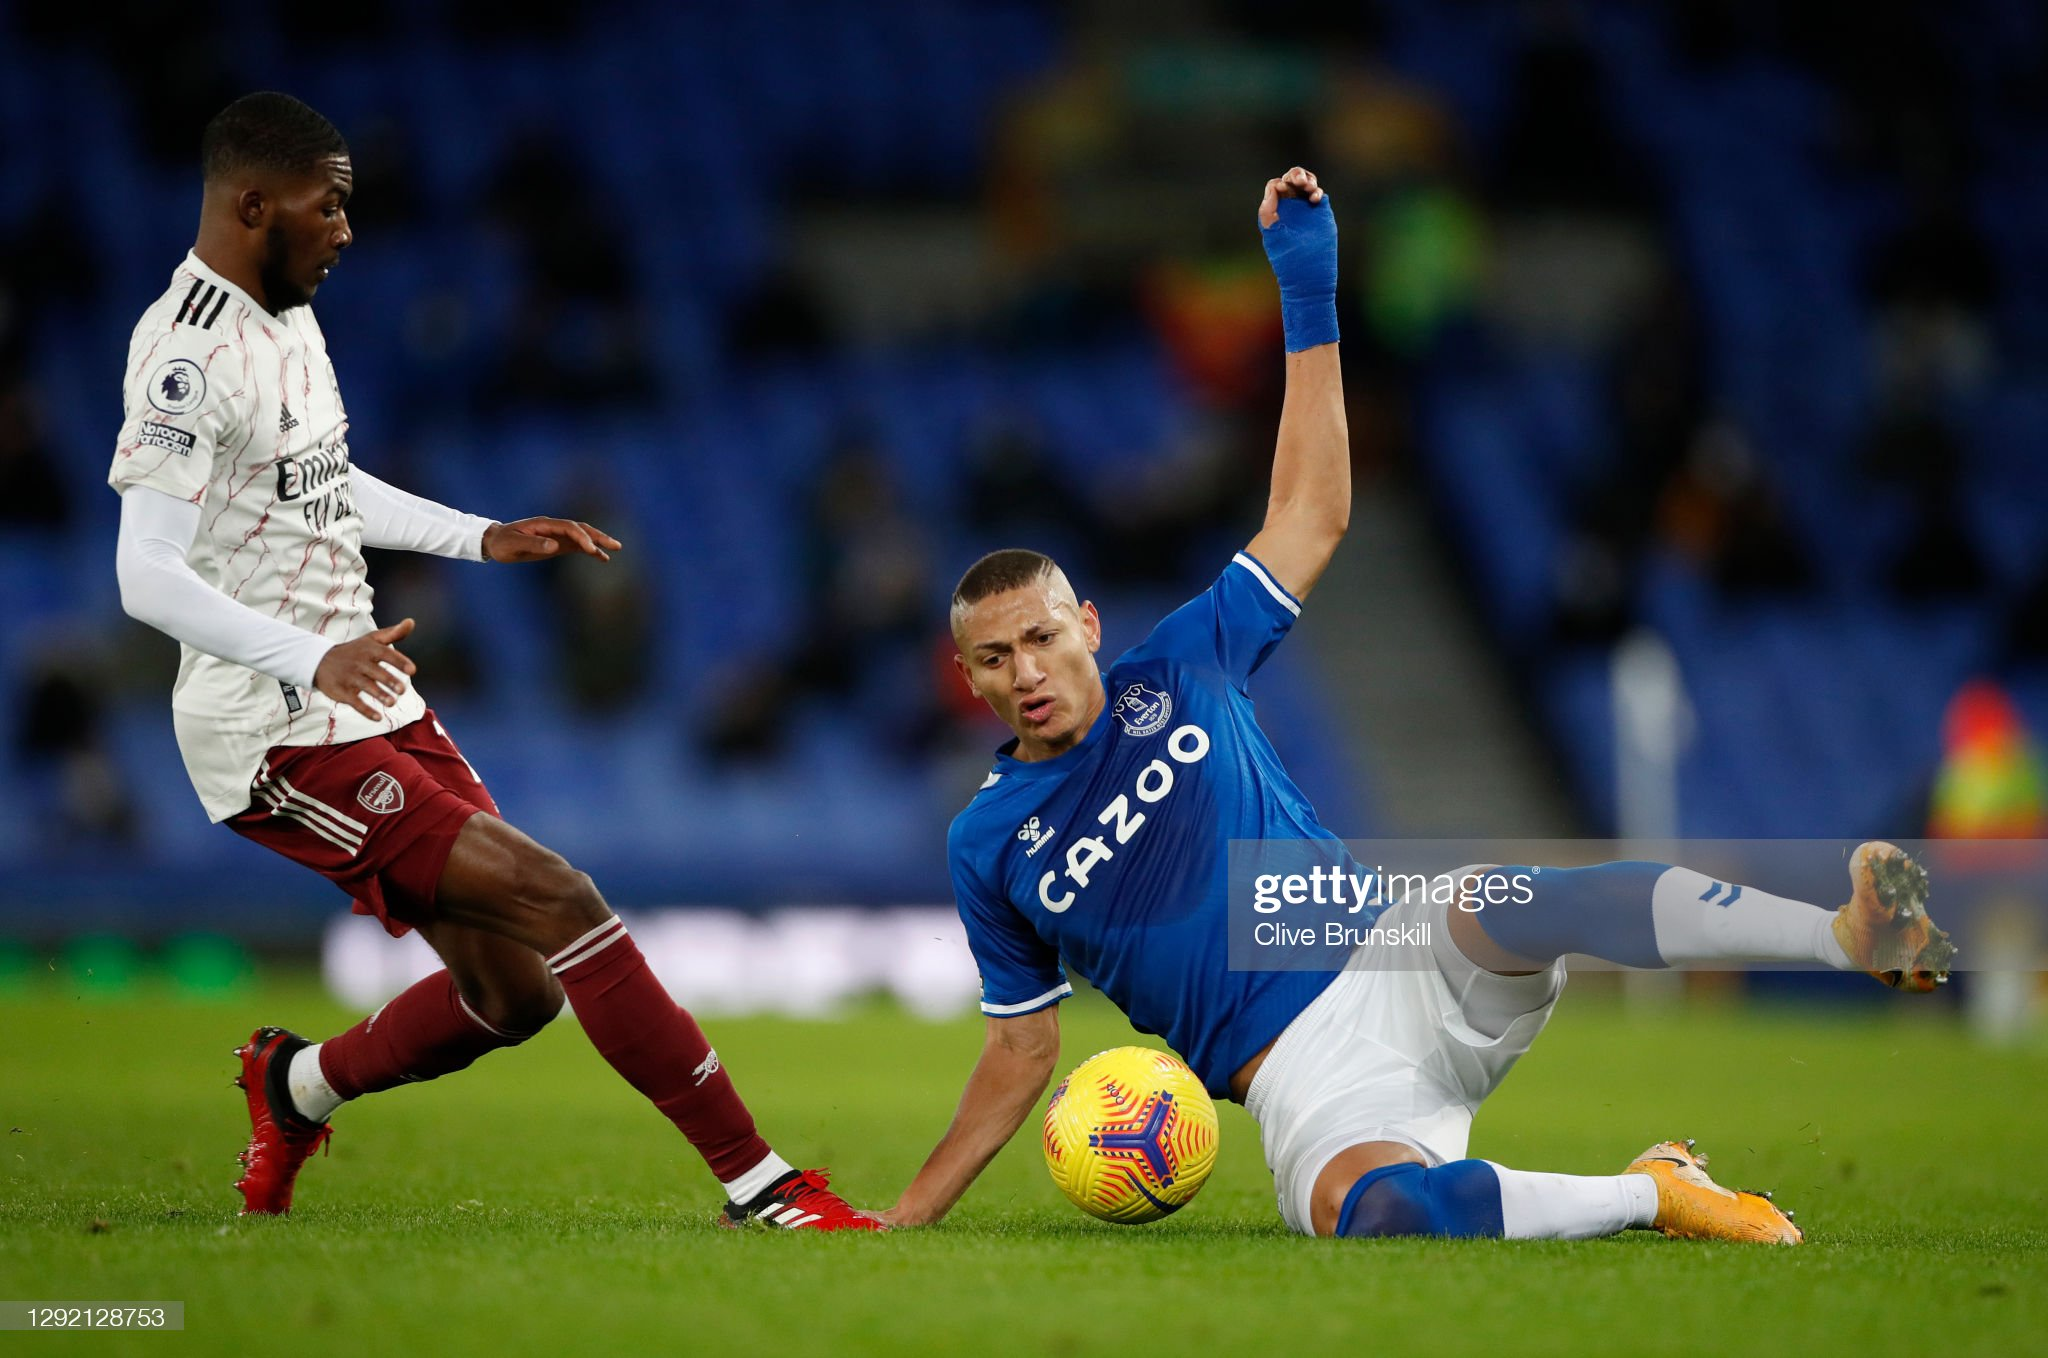 Arsenal vs Everton Preview, prediction and odds